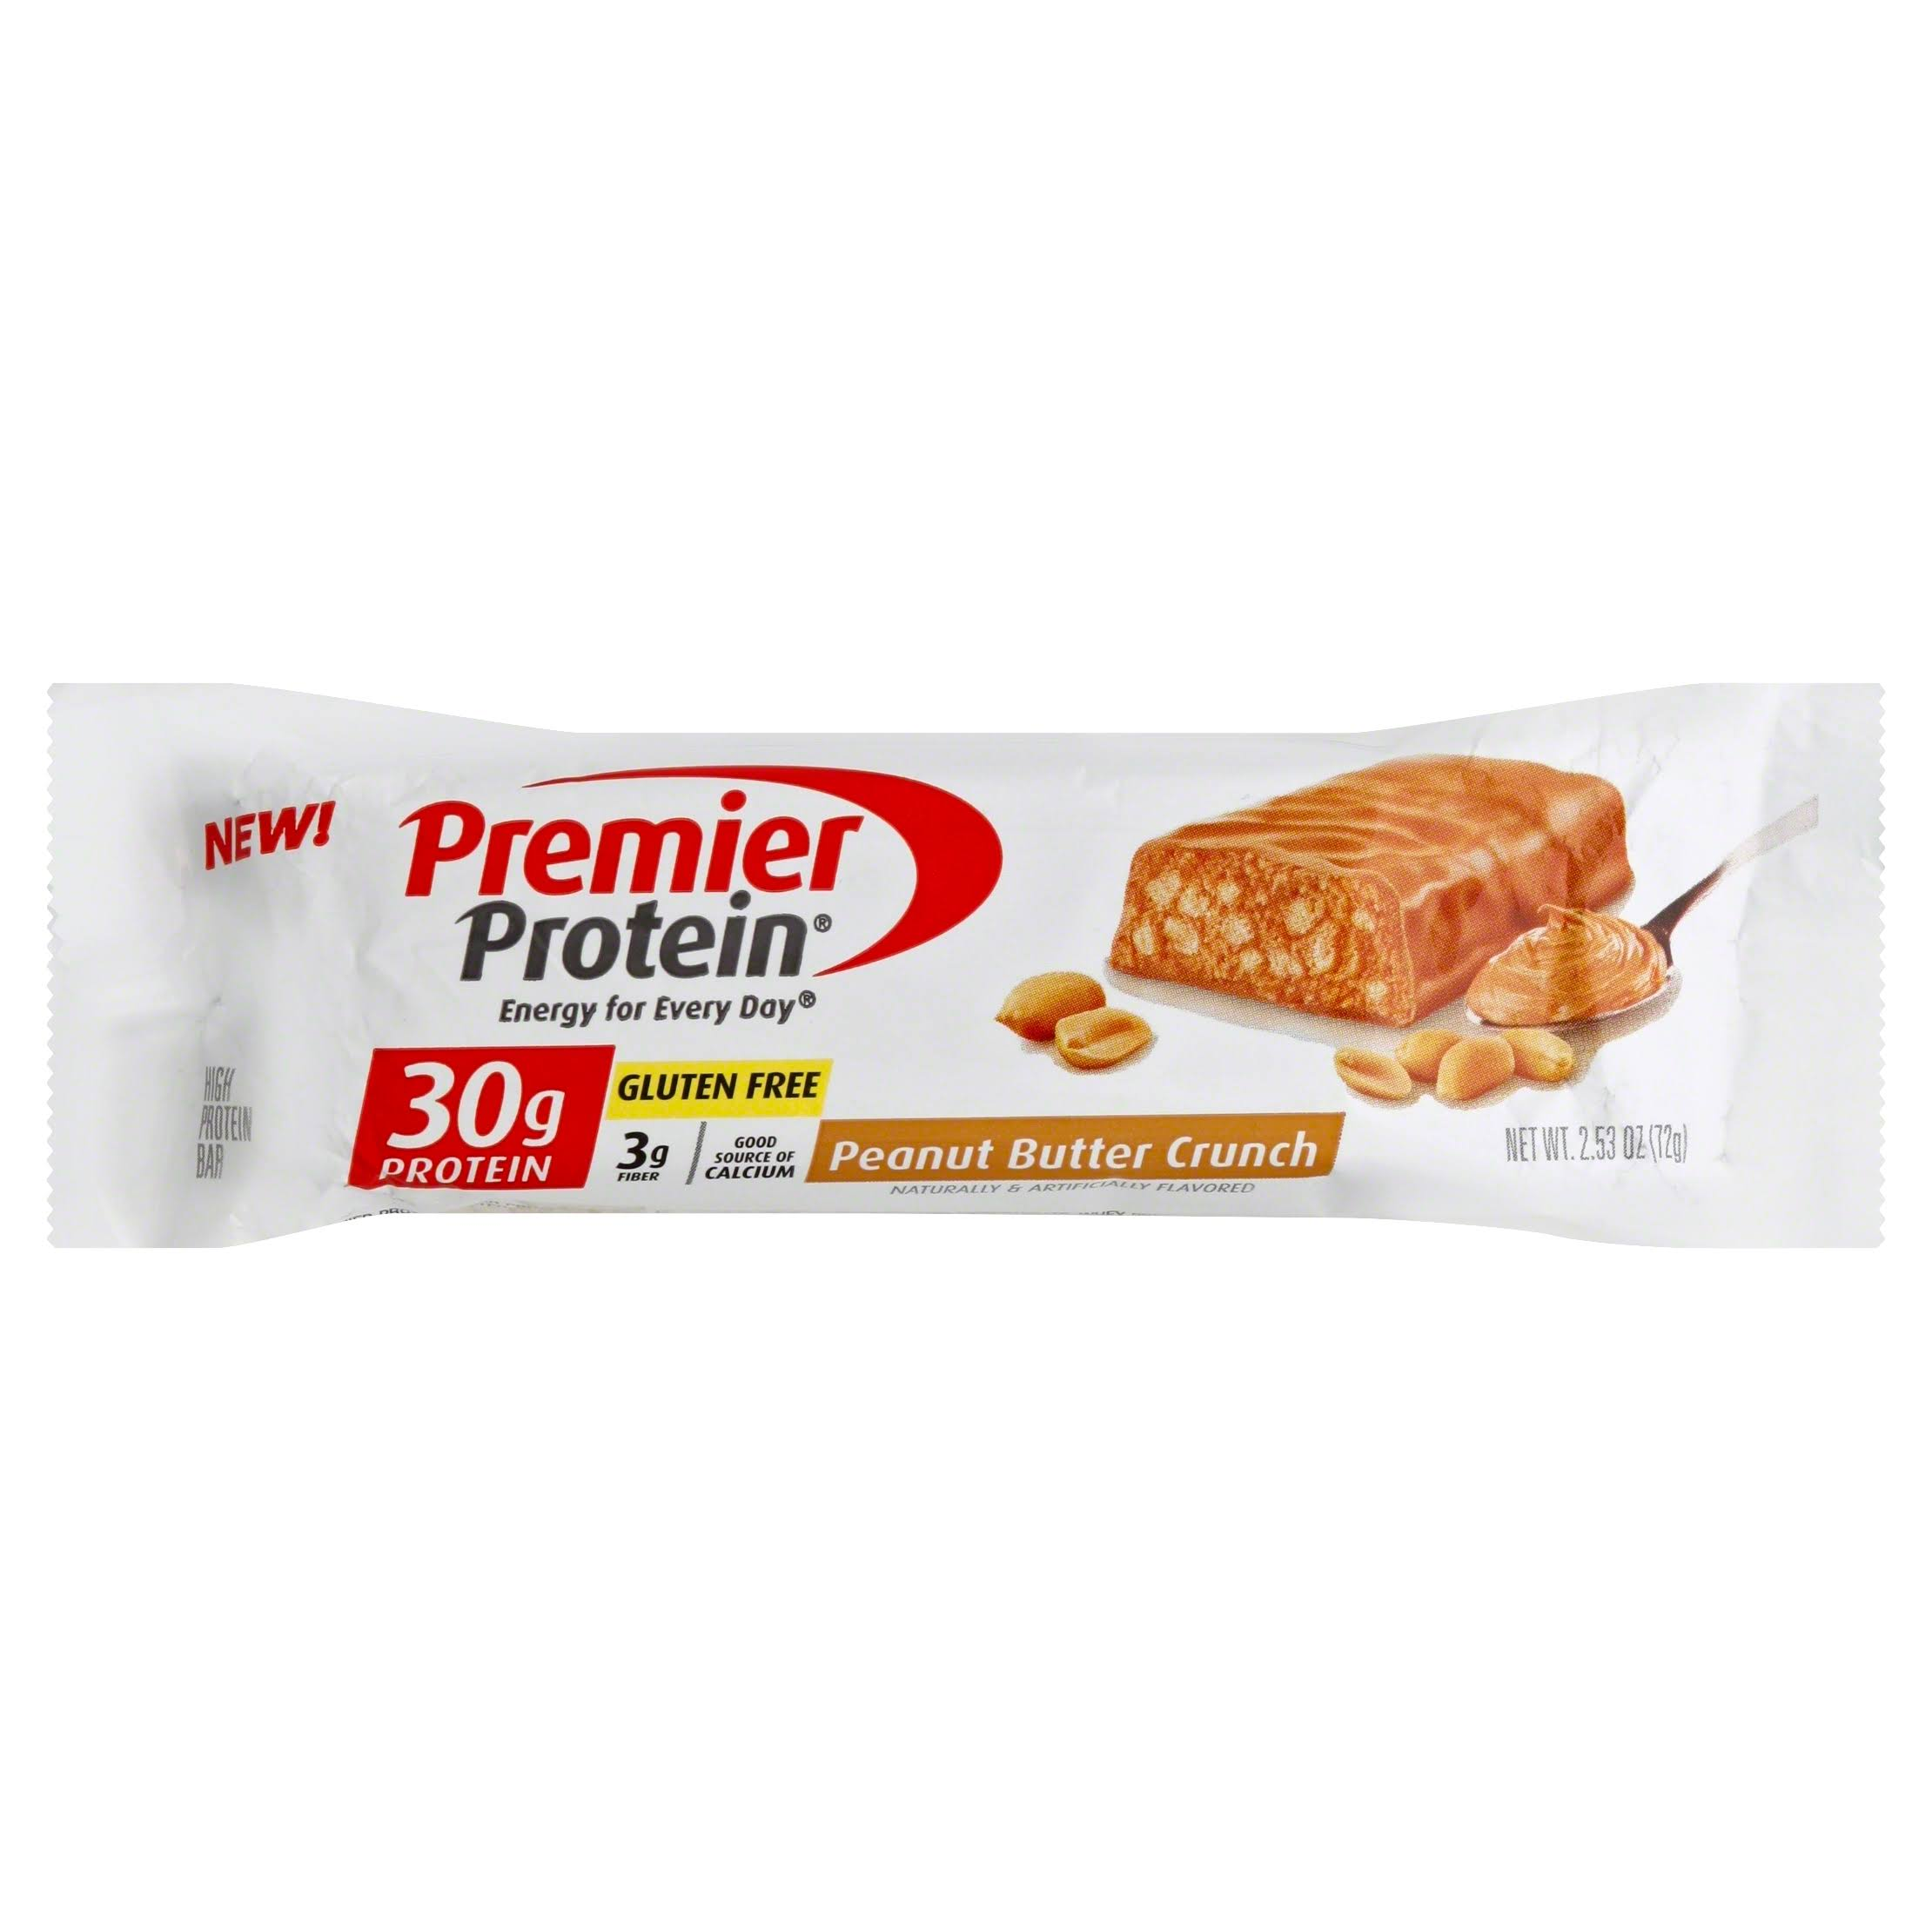 Premier Protein High Protein Bar - Peanut Butter Crunch, 2.53oz